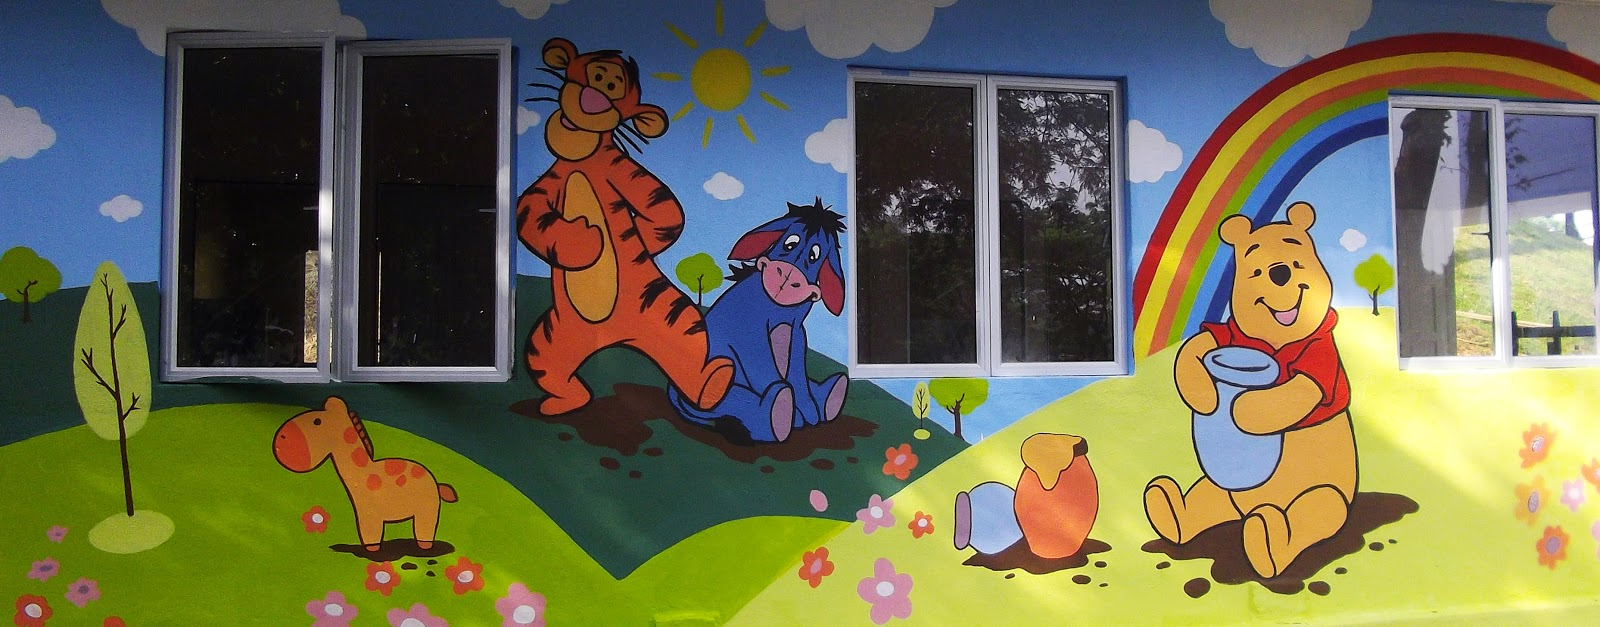 Warna arts mural art painting for all for Commercial mural painting